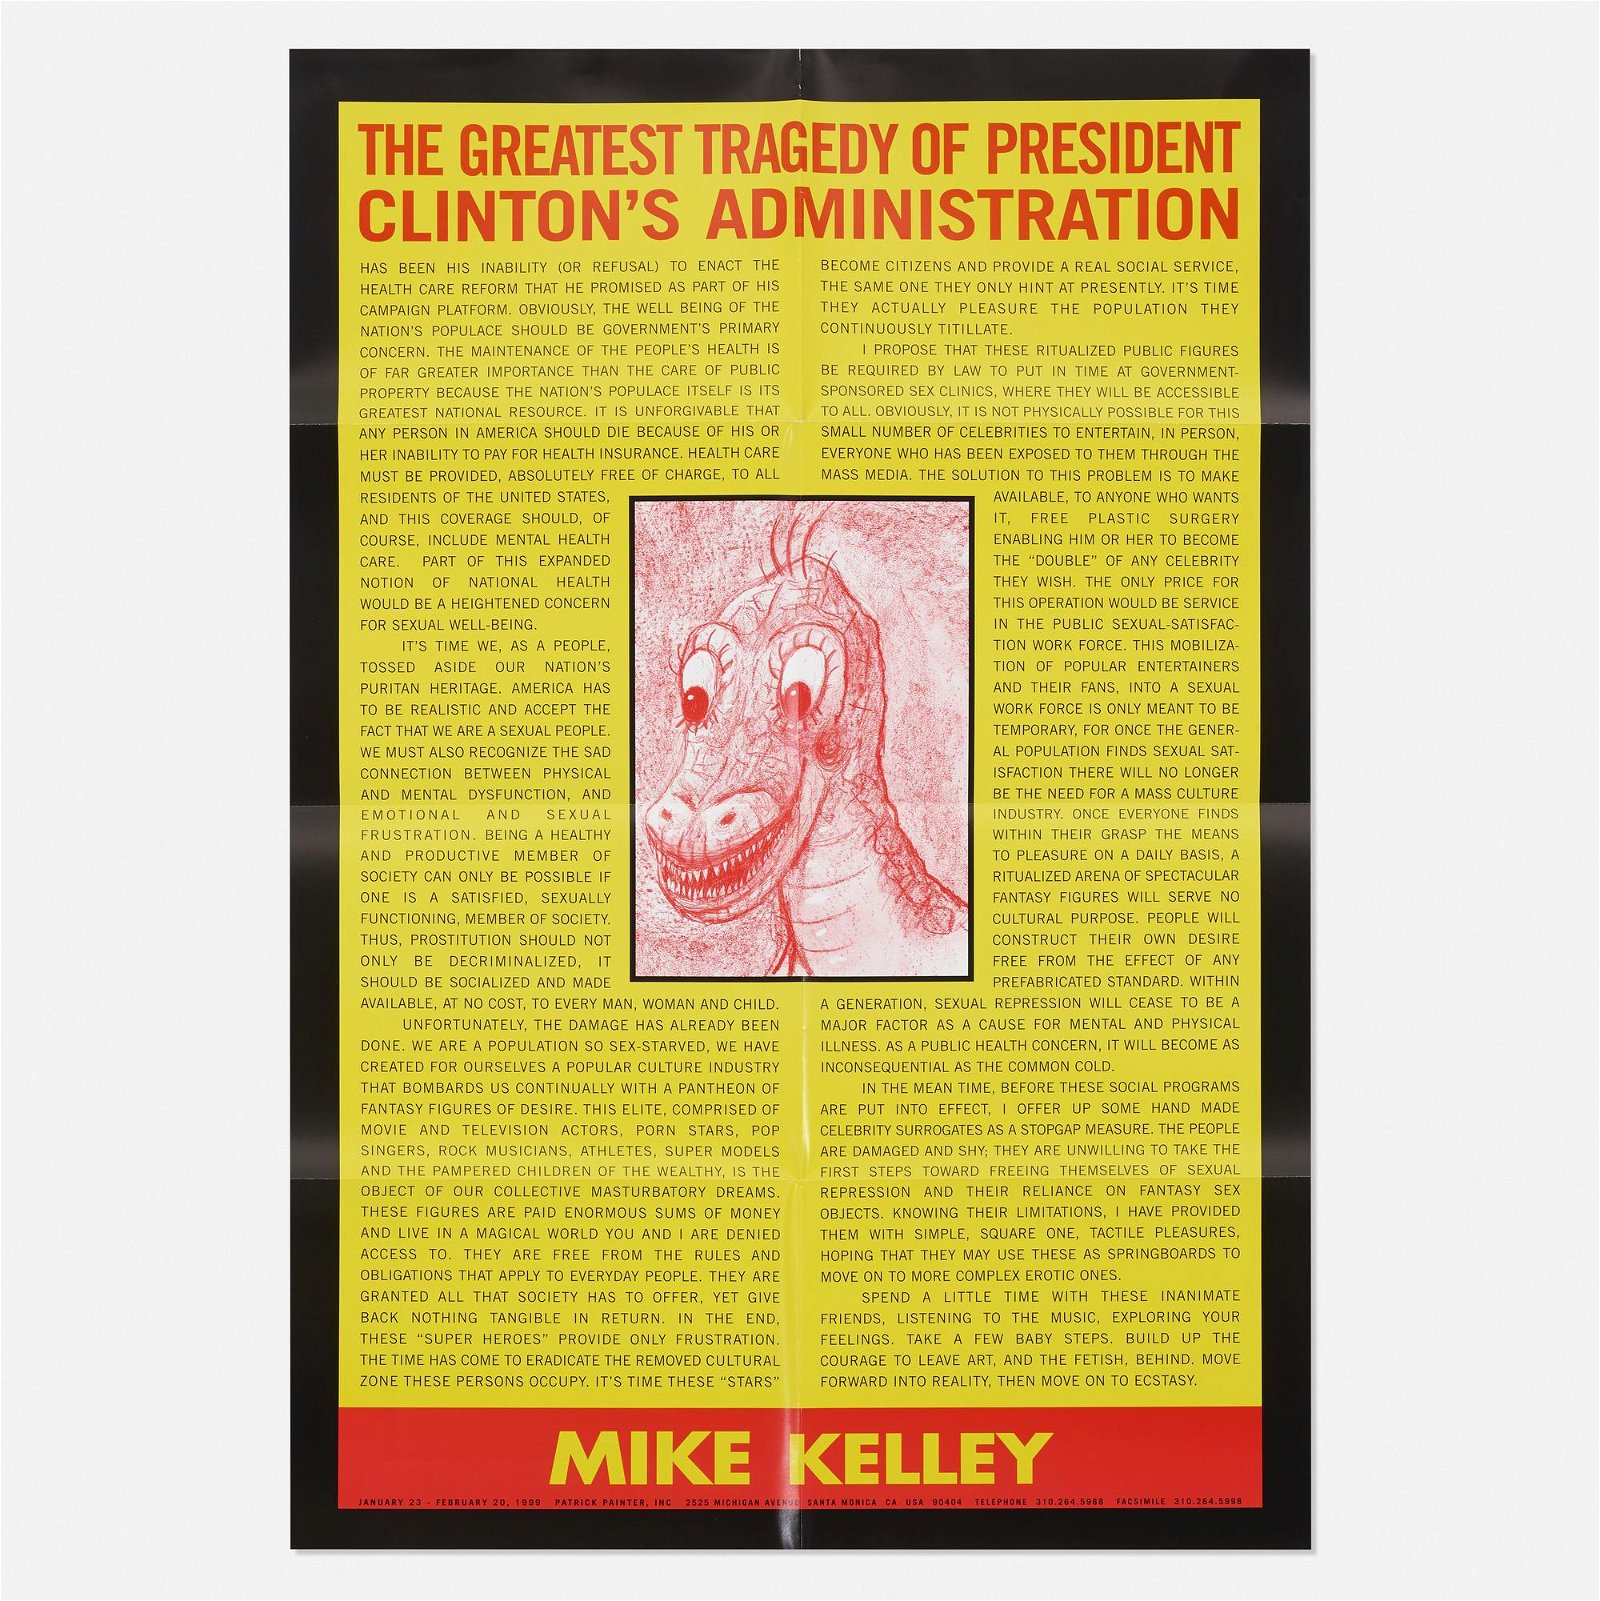 Mike Kelley, The Greatest Tragedy?